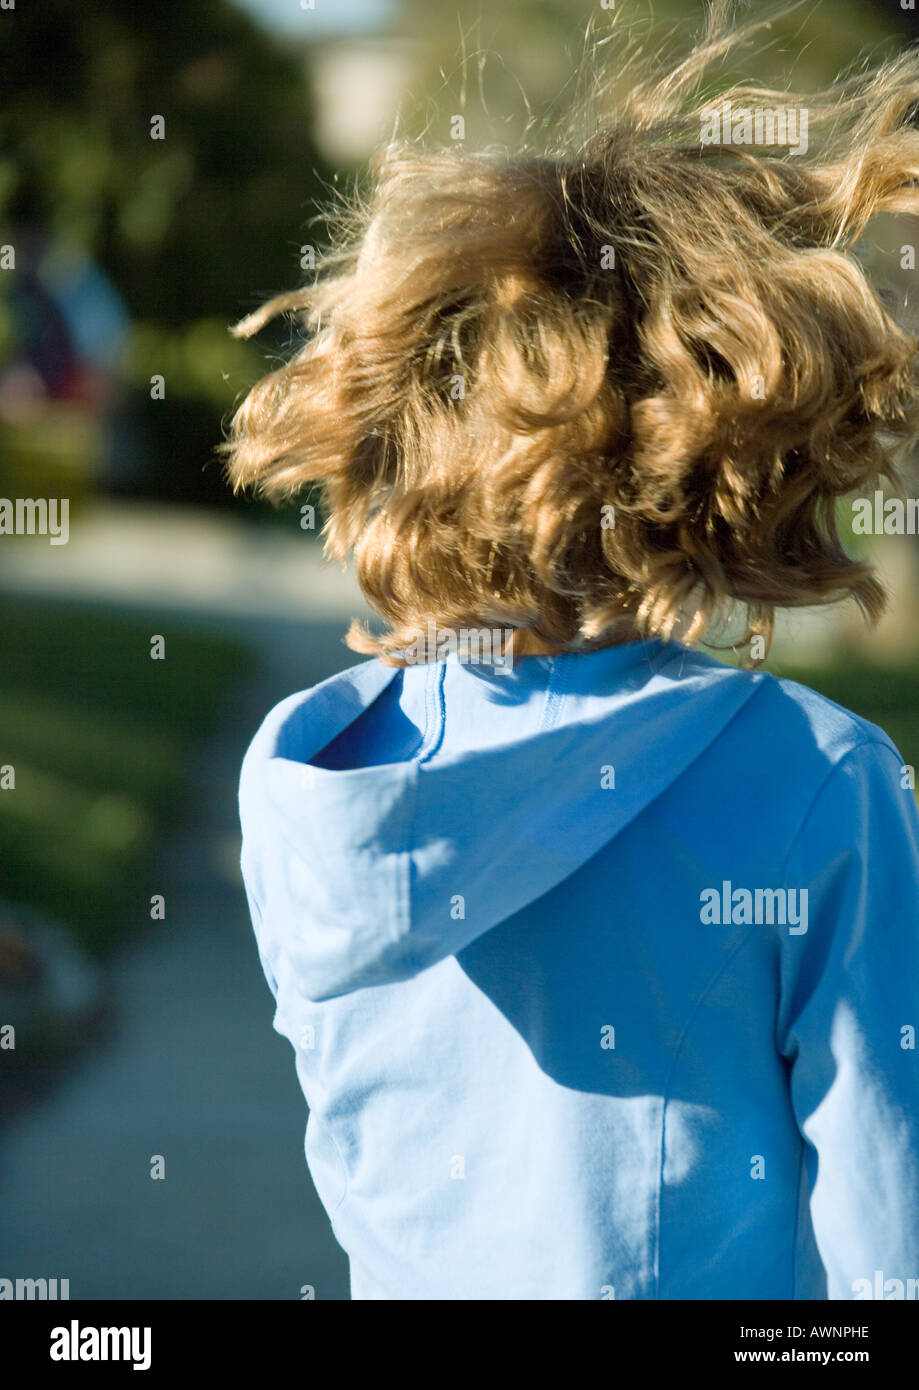 Girl with hair being tousled, rear view - Stock Image